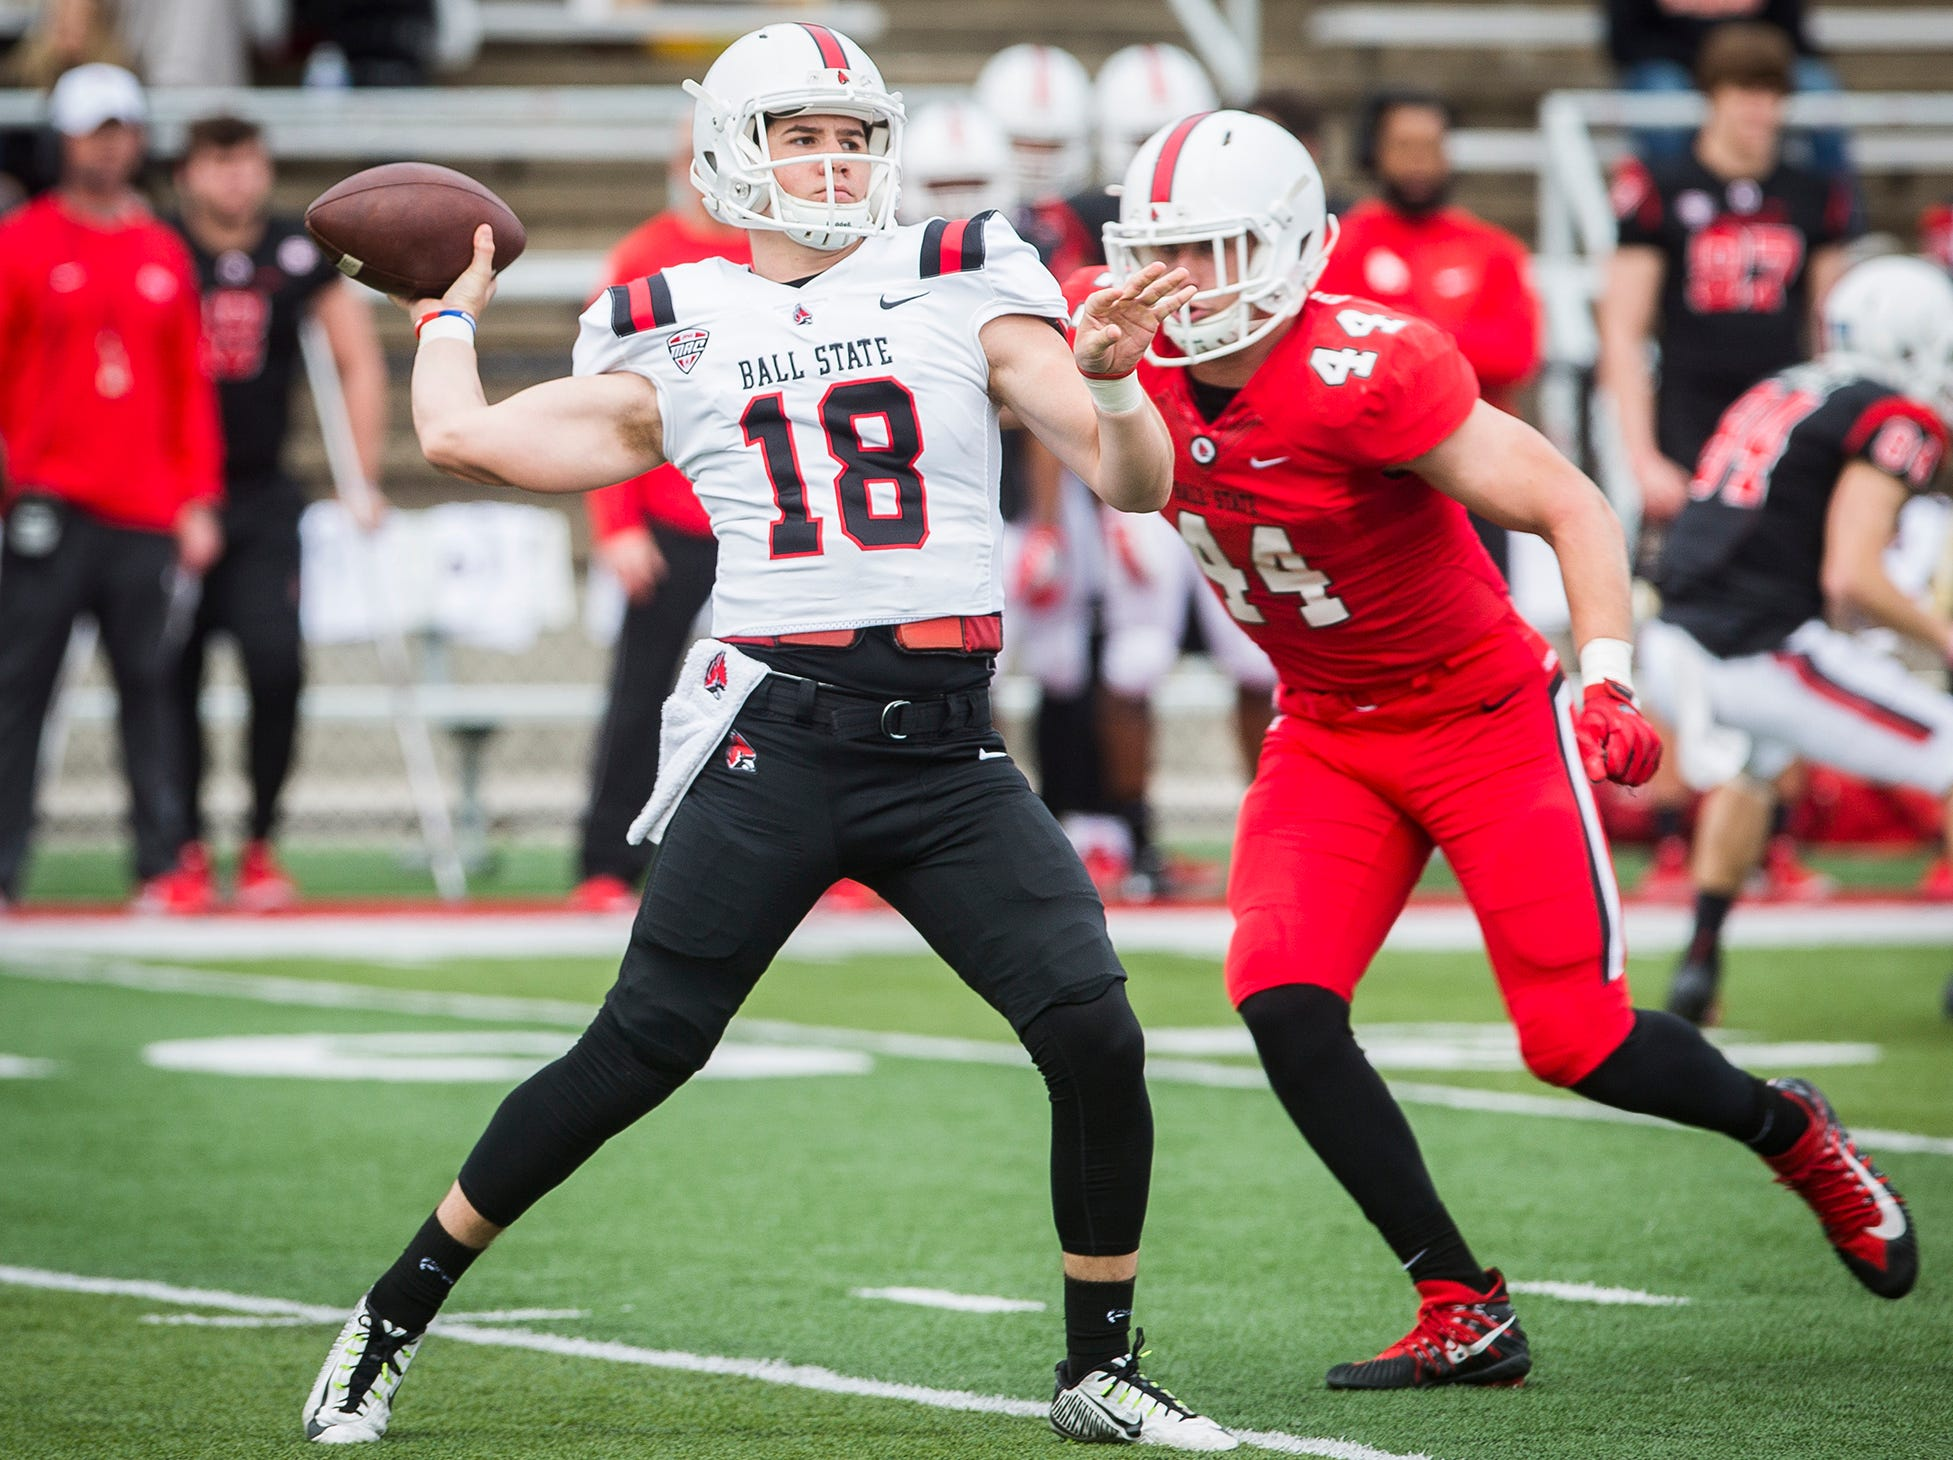 Ball State's John Paddock throws during the annual Spring Game at Scheumann Stadium Saturday, April 13, 2019.